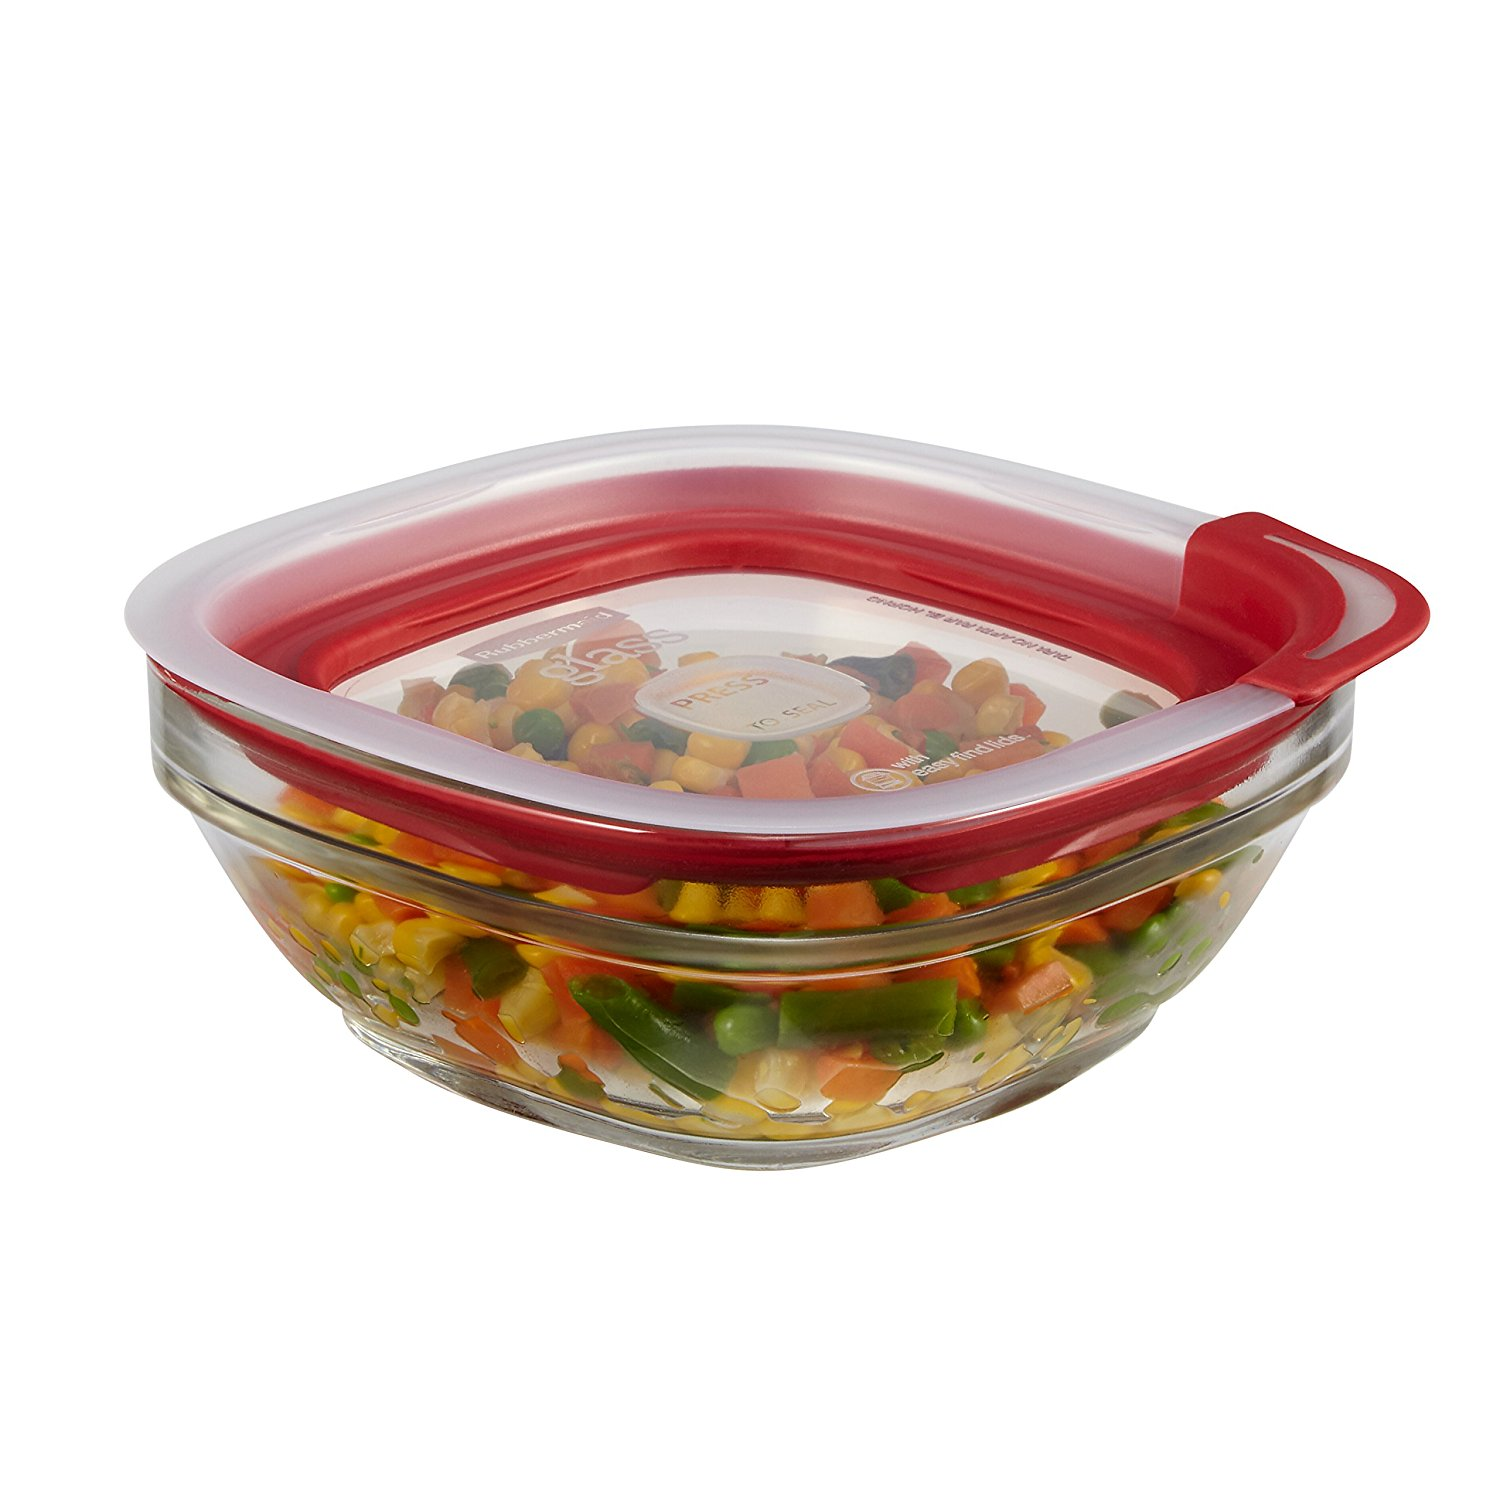 Rubbermaid Easy Find Lid Glass Food Storage Container 2 12 Cup